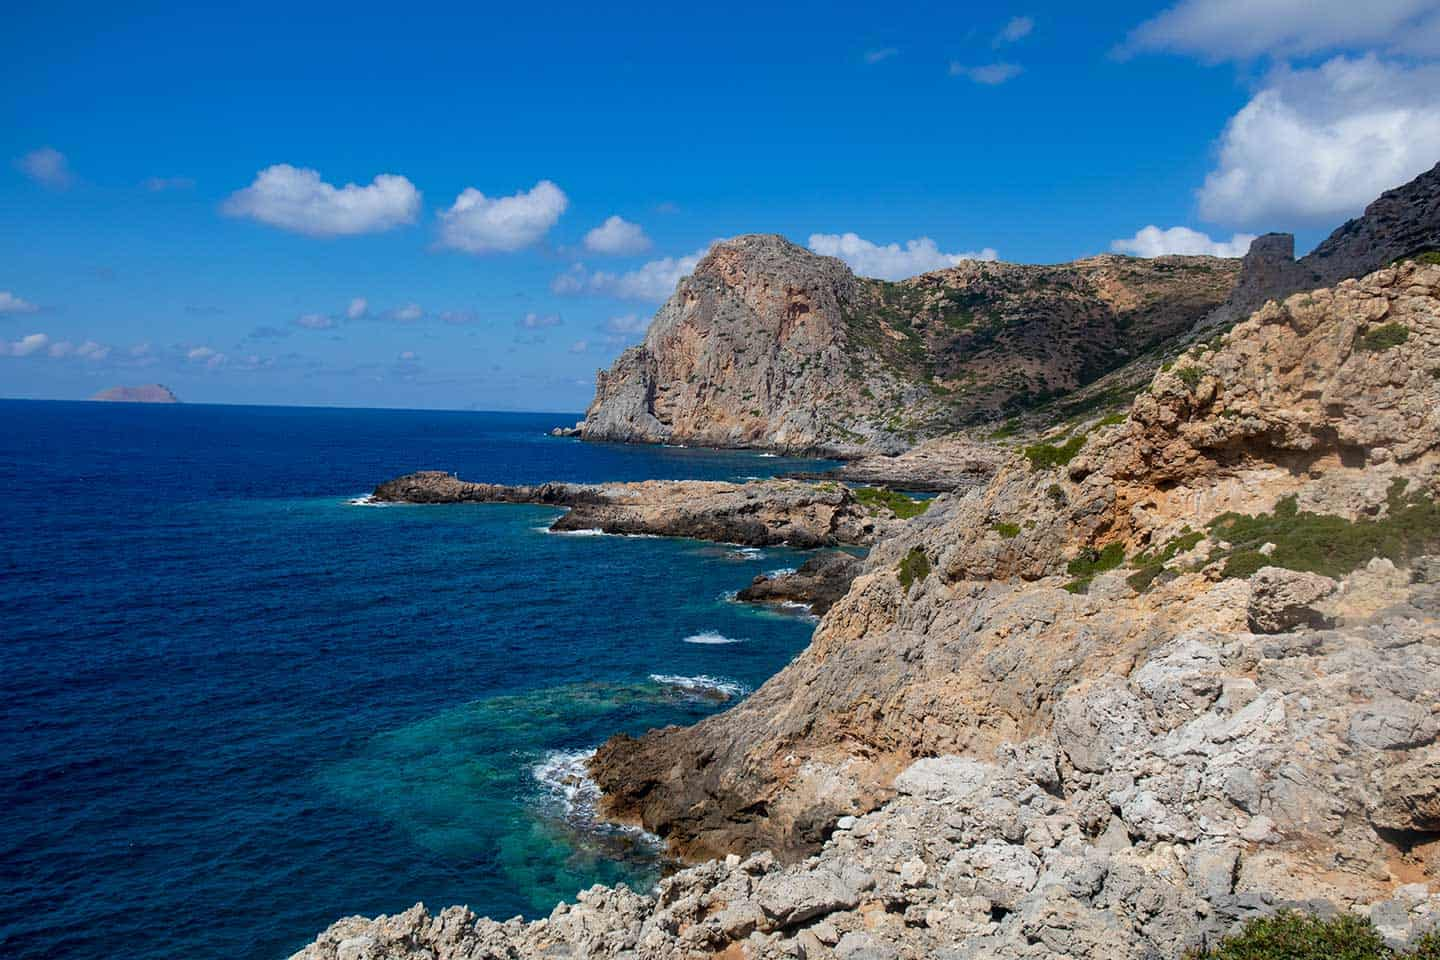 Image of dramatic coastal scenery near Ancient Falassarna